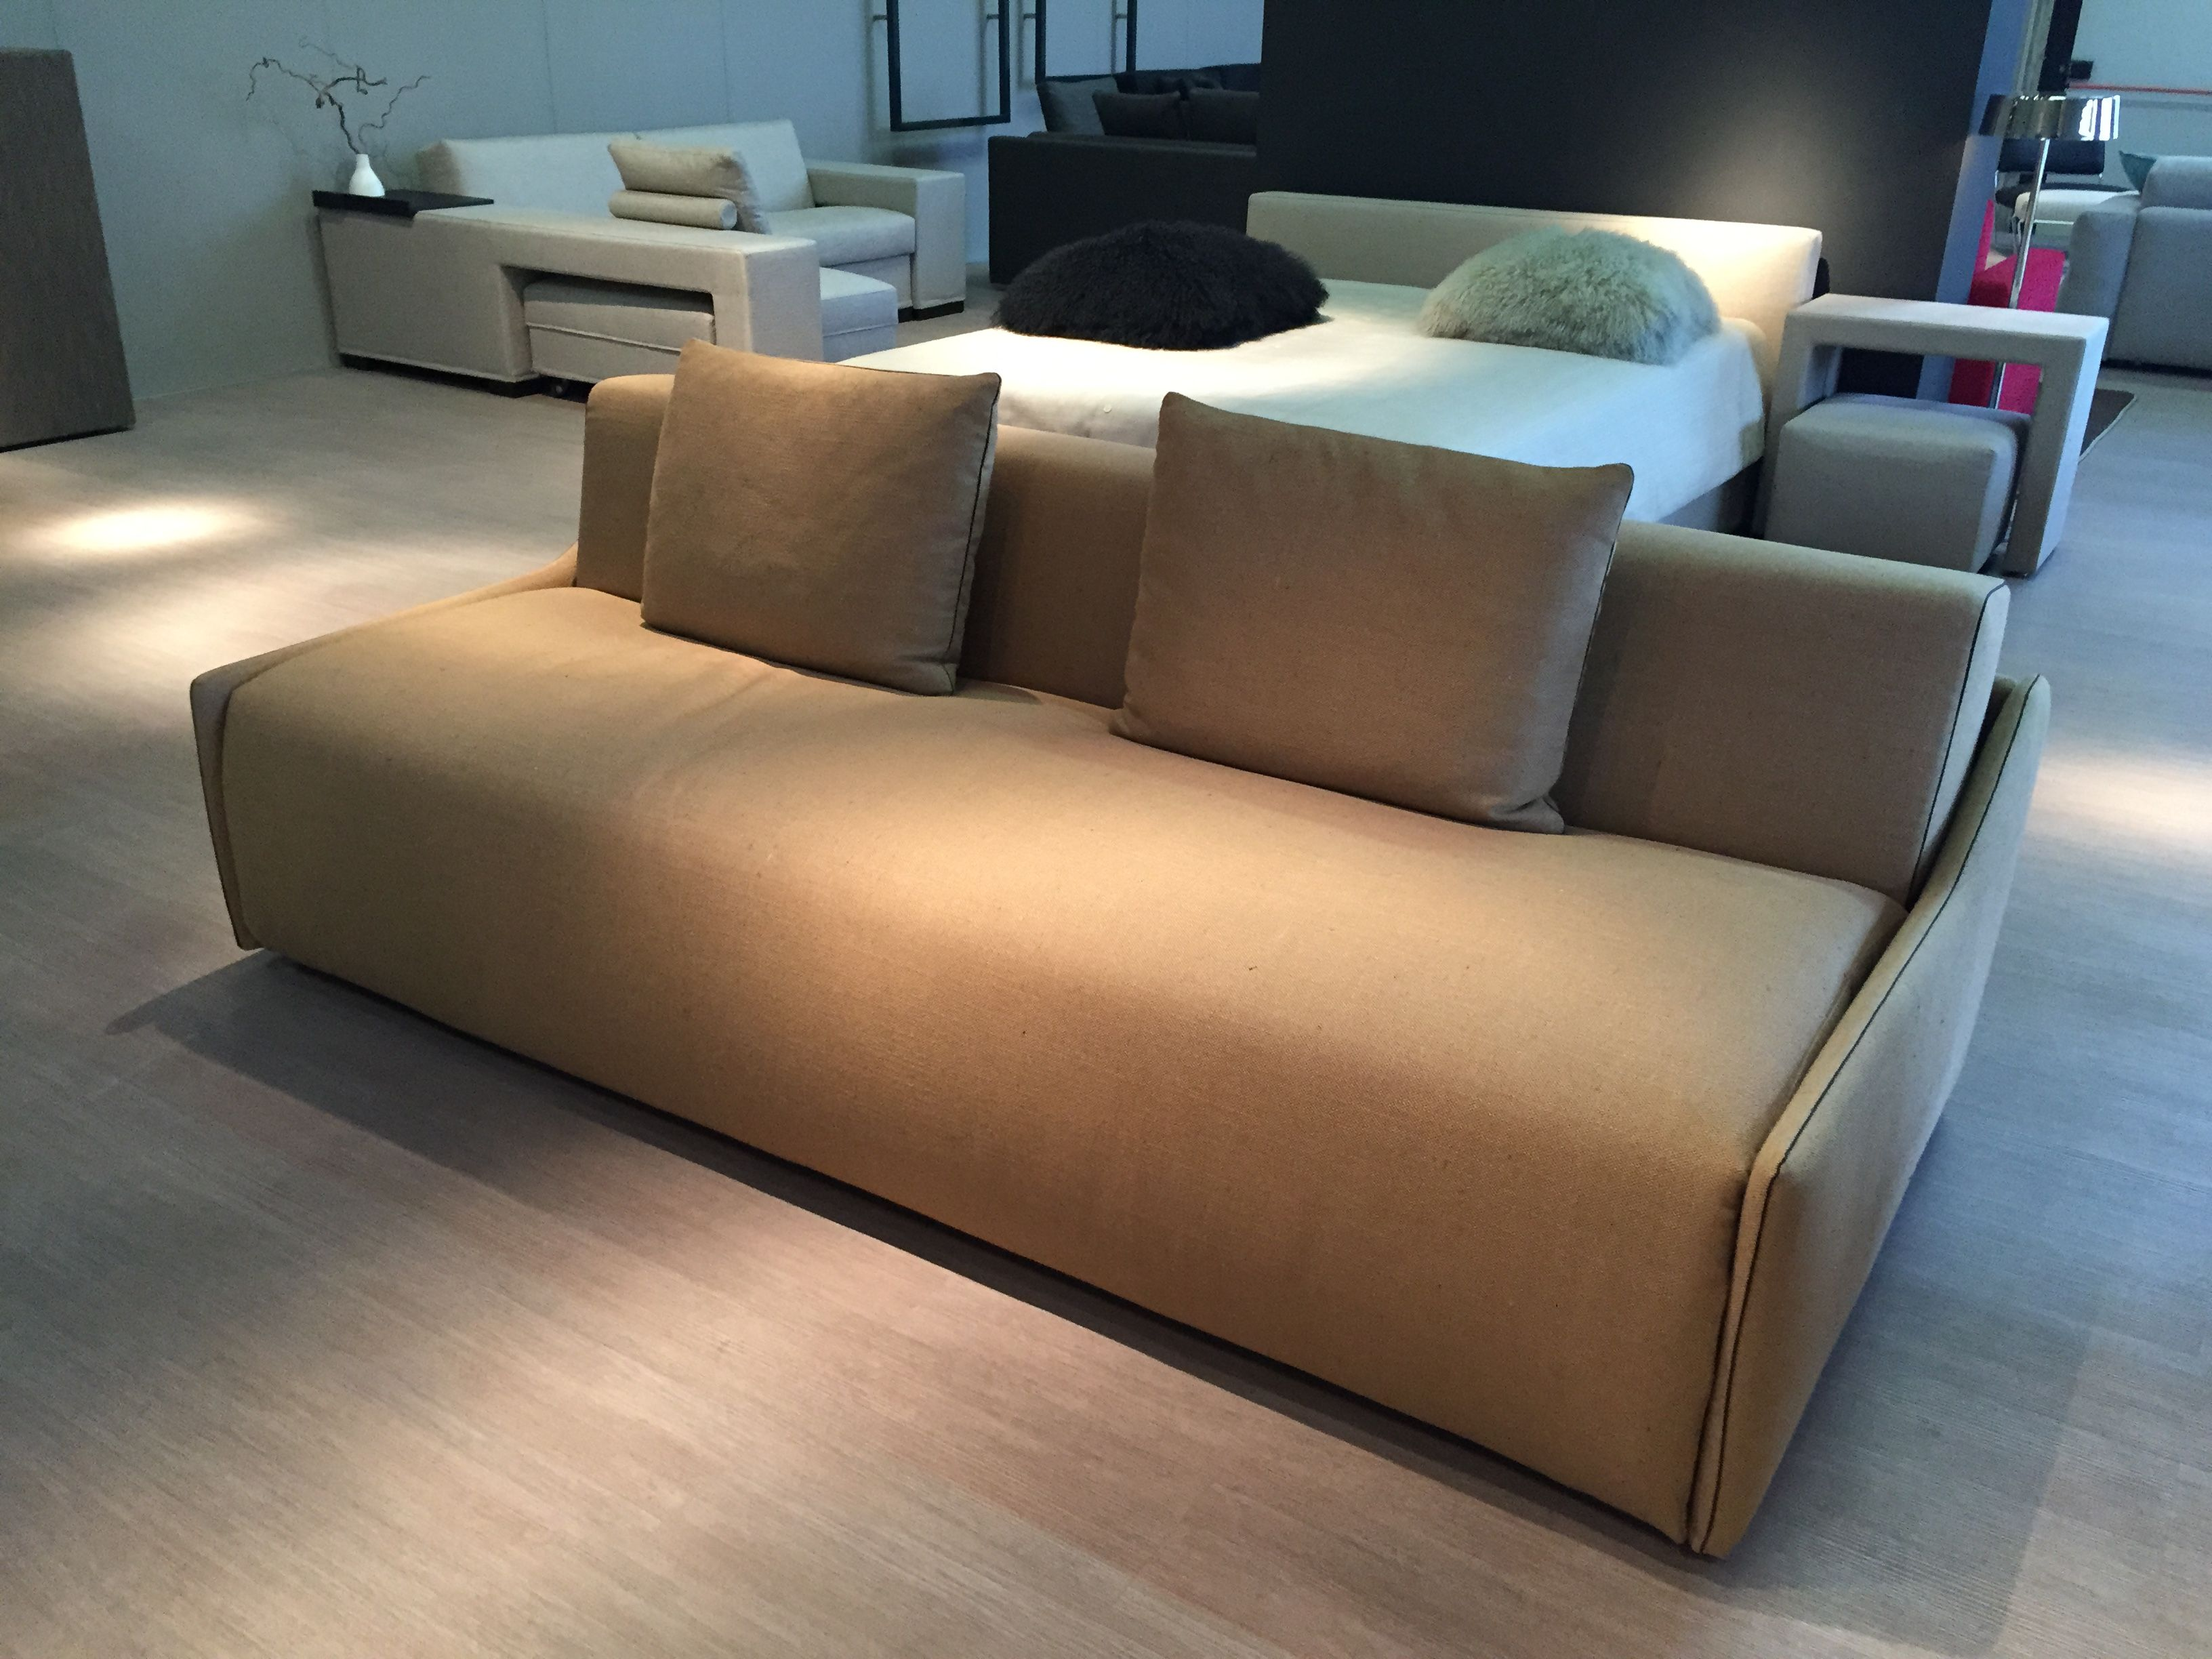 Best Double Decker Sofa Bed Closed Luxury Sofa Bed Sofa Bed 400 x 300